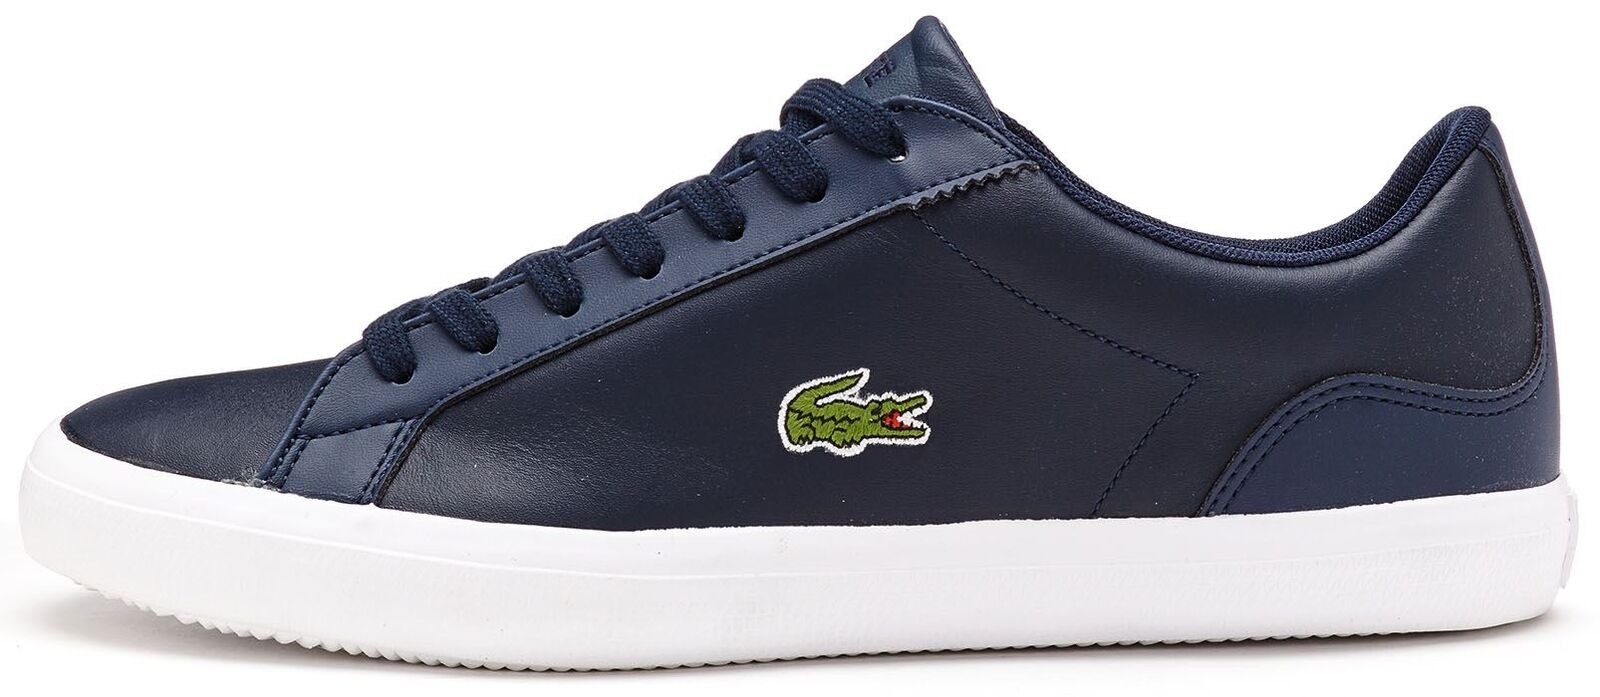 Lacoste Lerond BL 1 CAM Leather Trainers in Navy bluee 733CAM1032 003